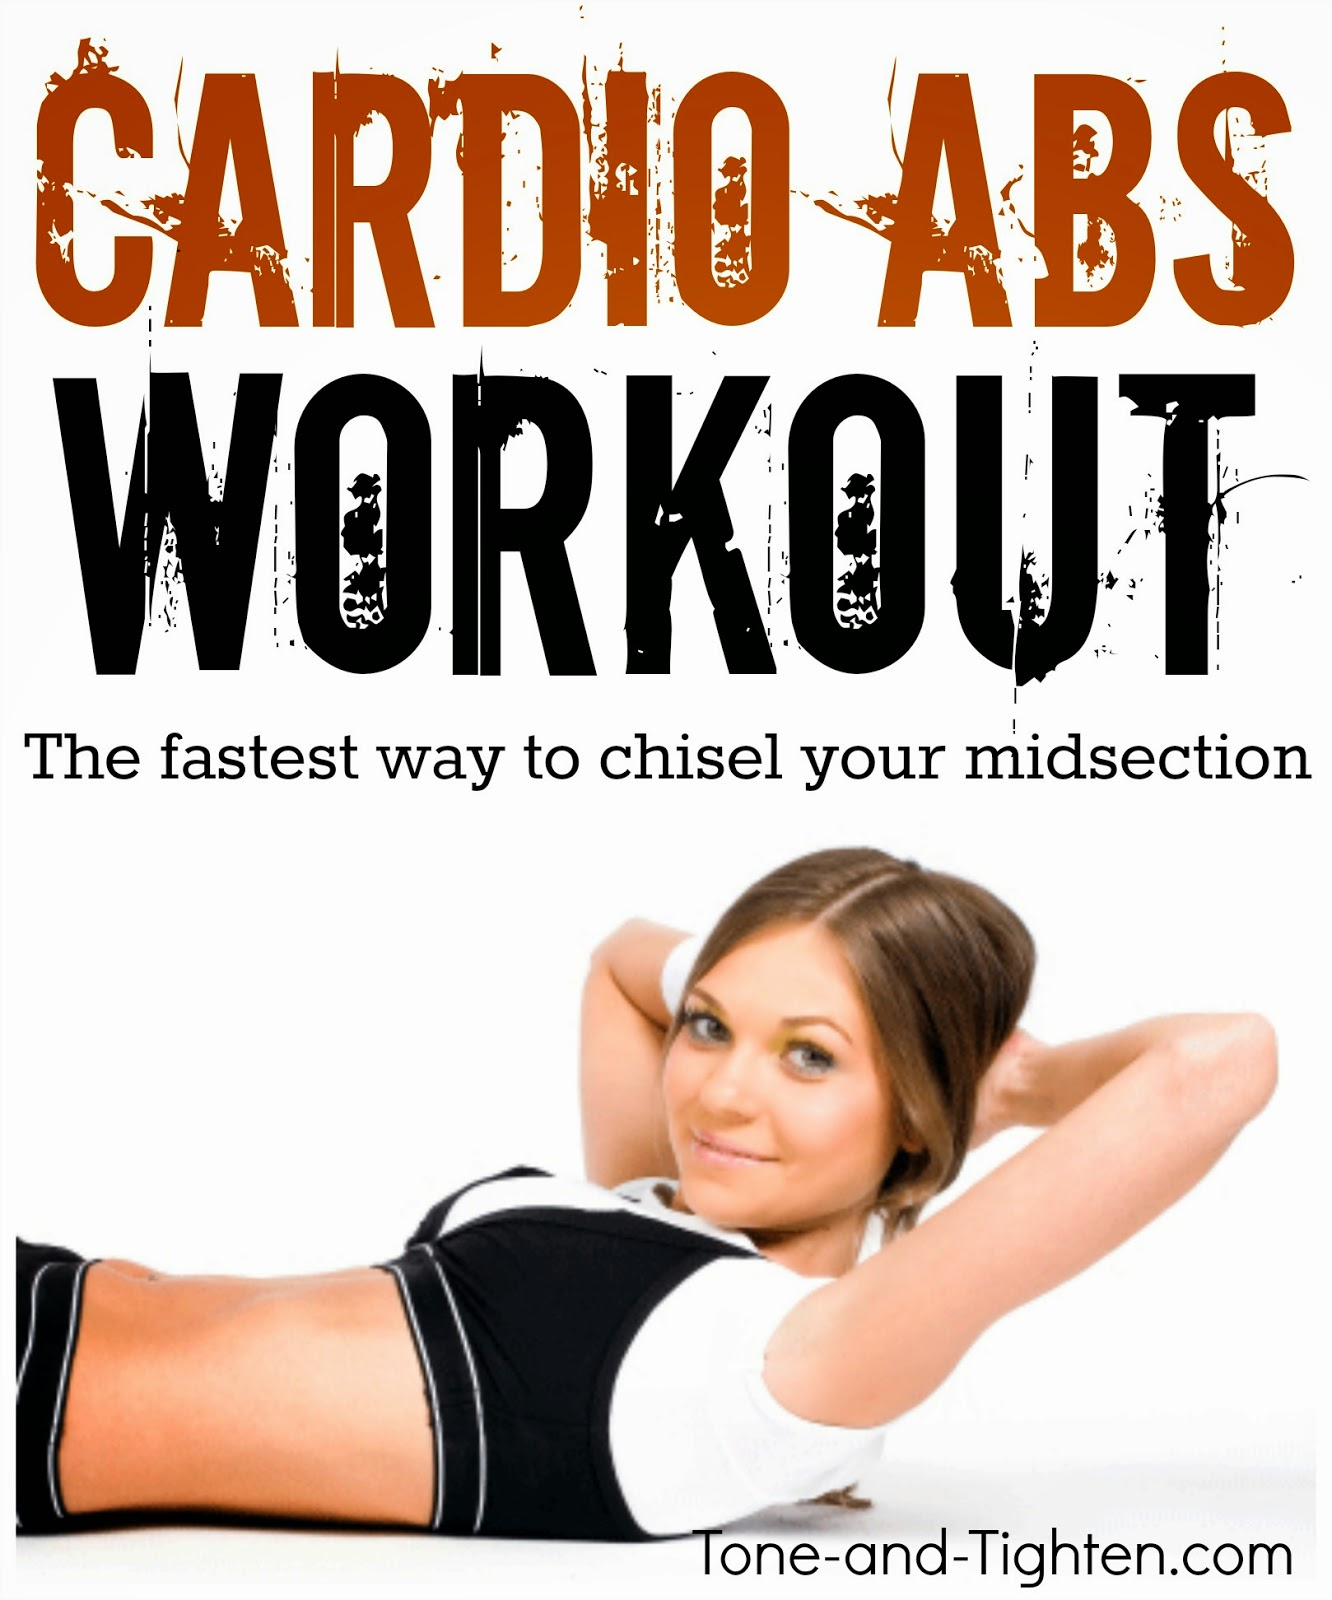 http://tone-and-tighten.com/2014/02/post-valentines-day-workout-cardio-core-at-home-meltdown.html